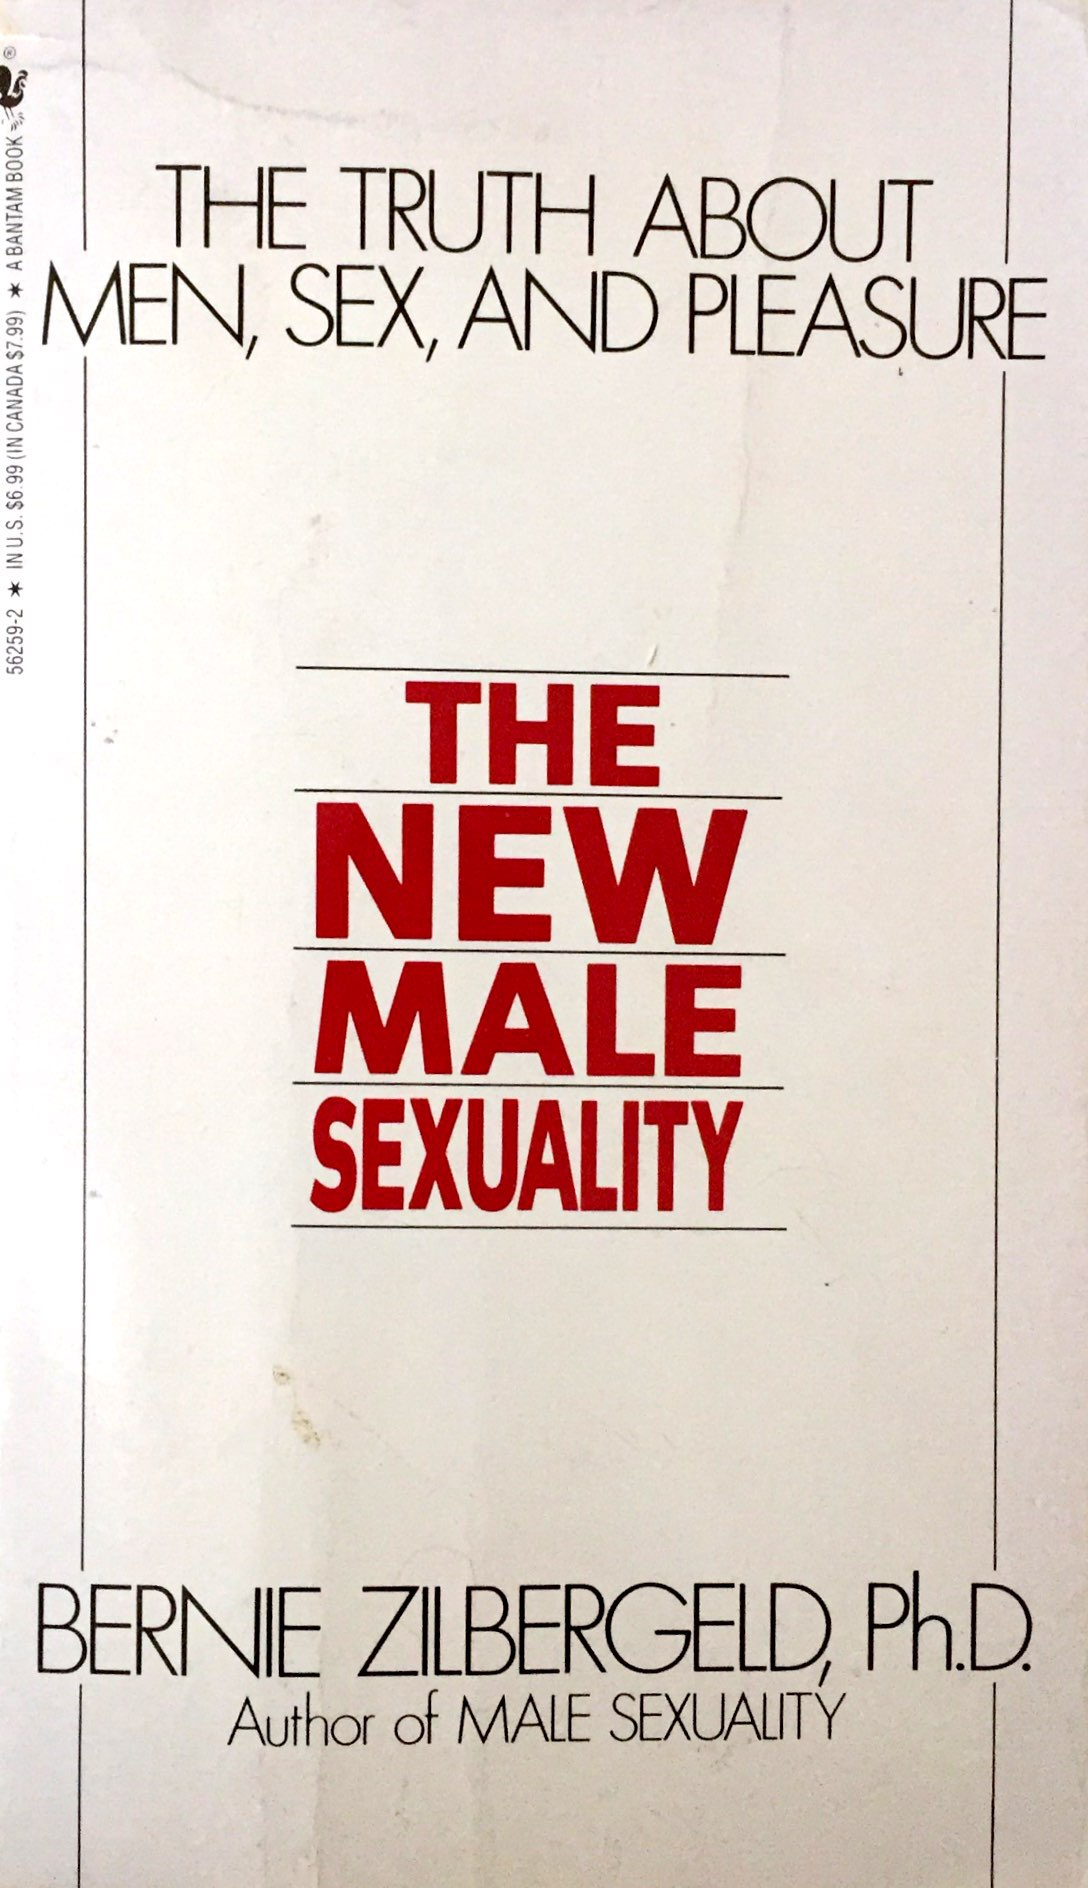 The New Male Sexuality – The Truth About Men, Sex And Pleasure